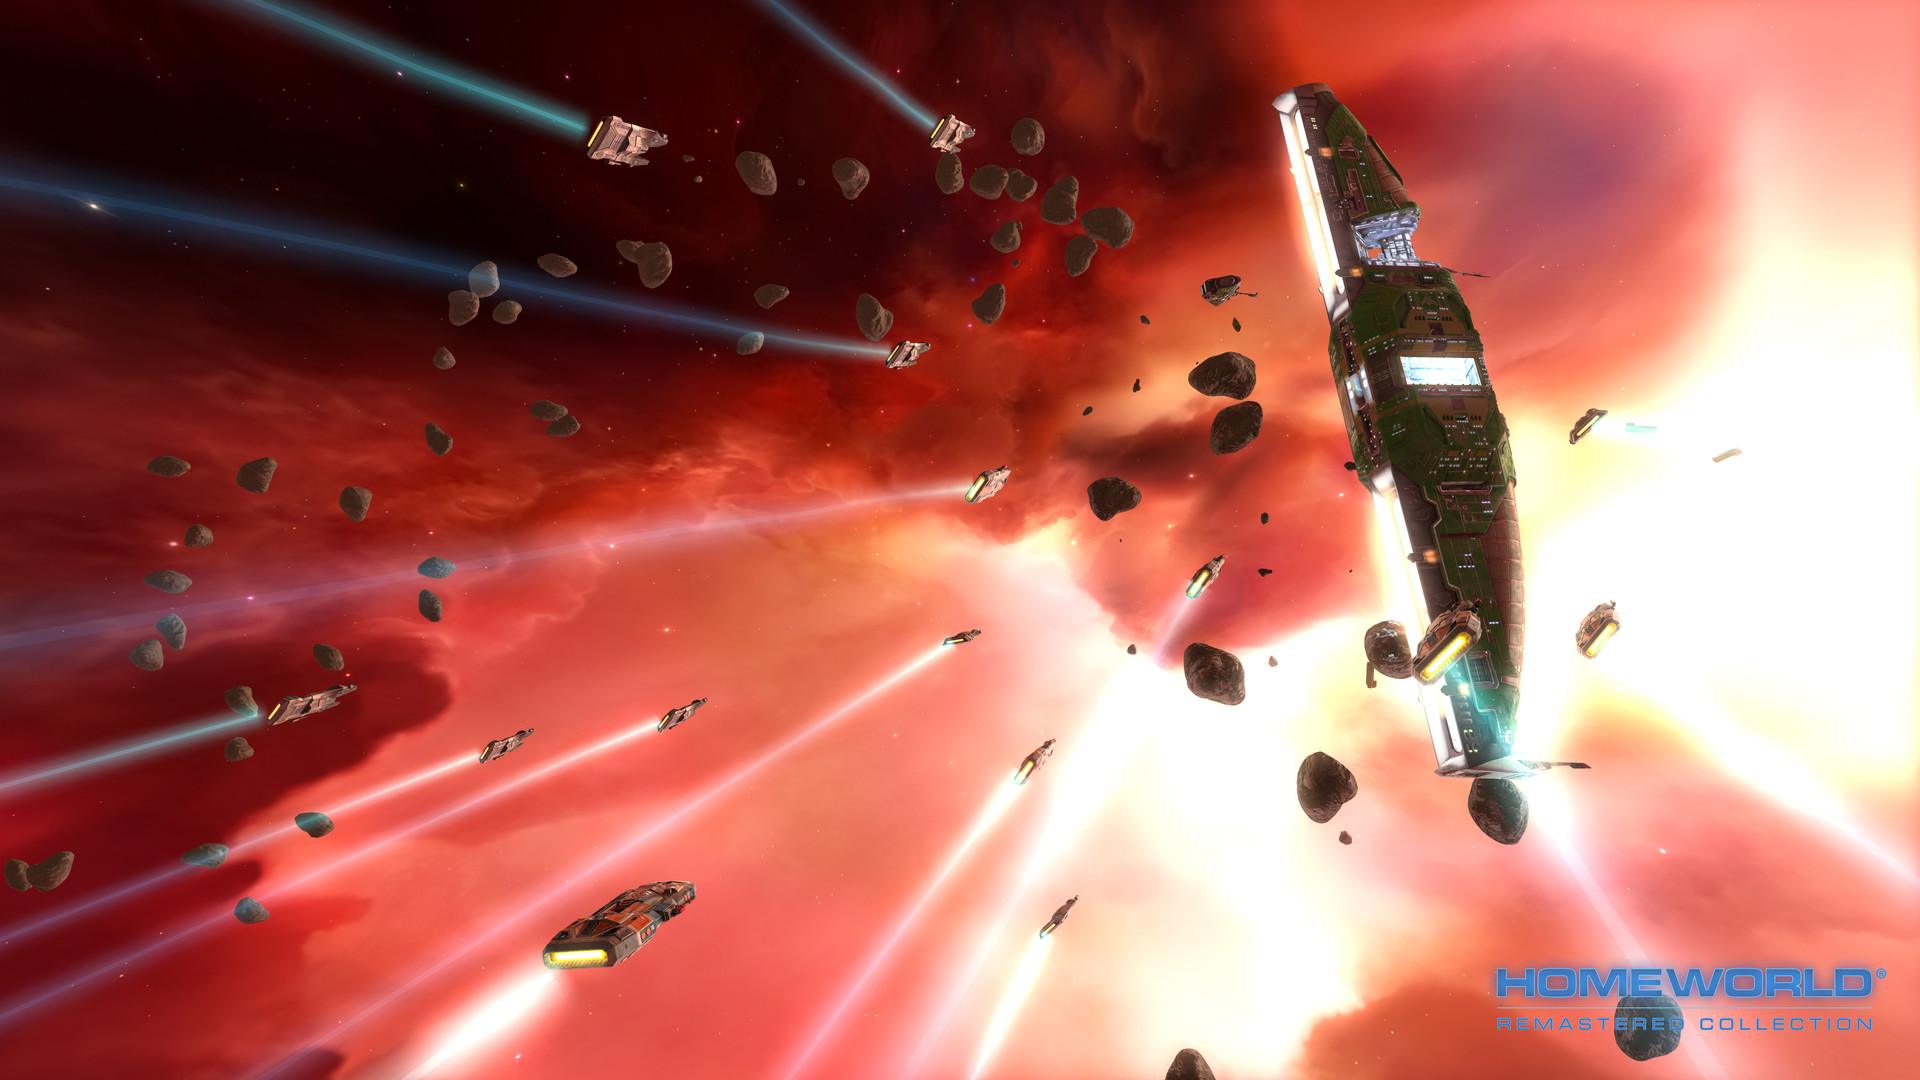 Find the best laptop for Homeworld Remastered Collection